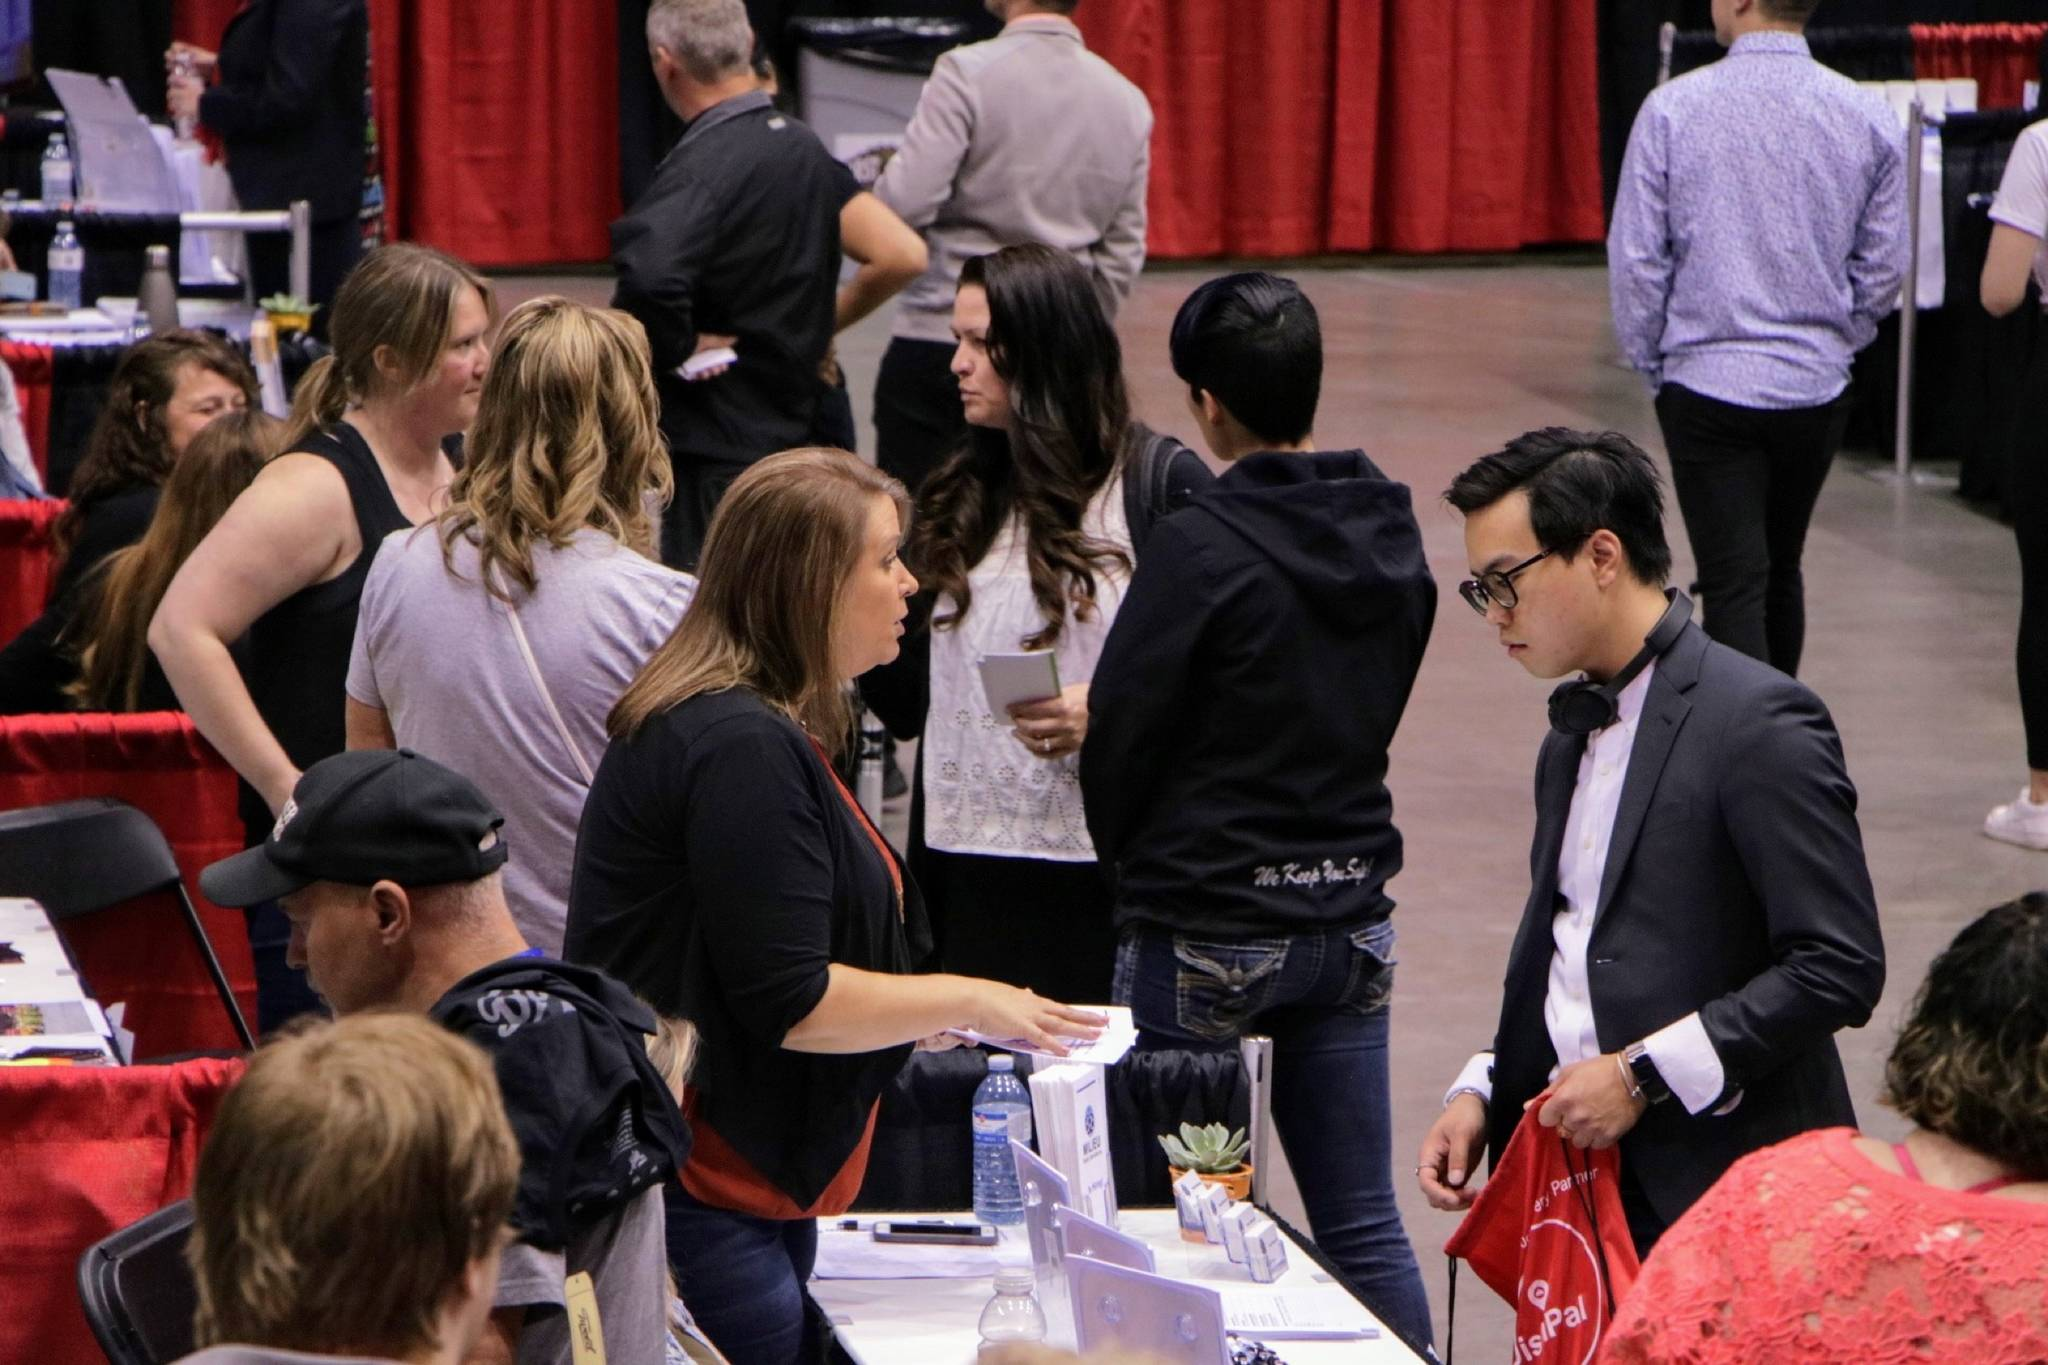 Stop by the Abbotsford Centre today between 11 a.m. and 3 p.m. to find your dream career (Photo by Dustin Godfrey/Black Press Media).